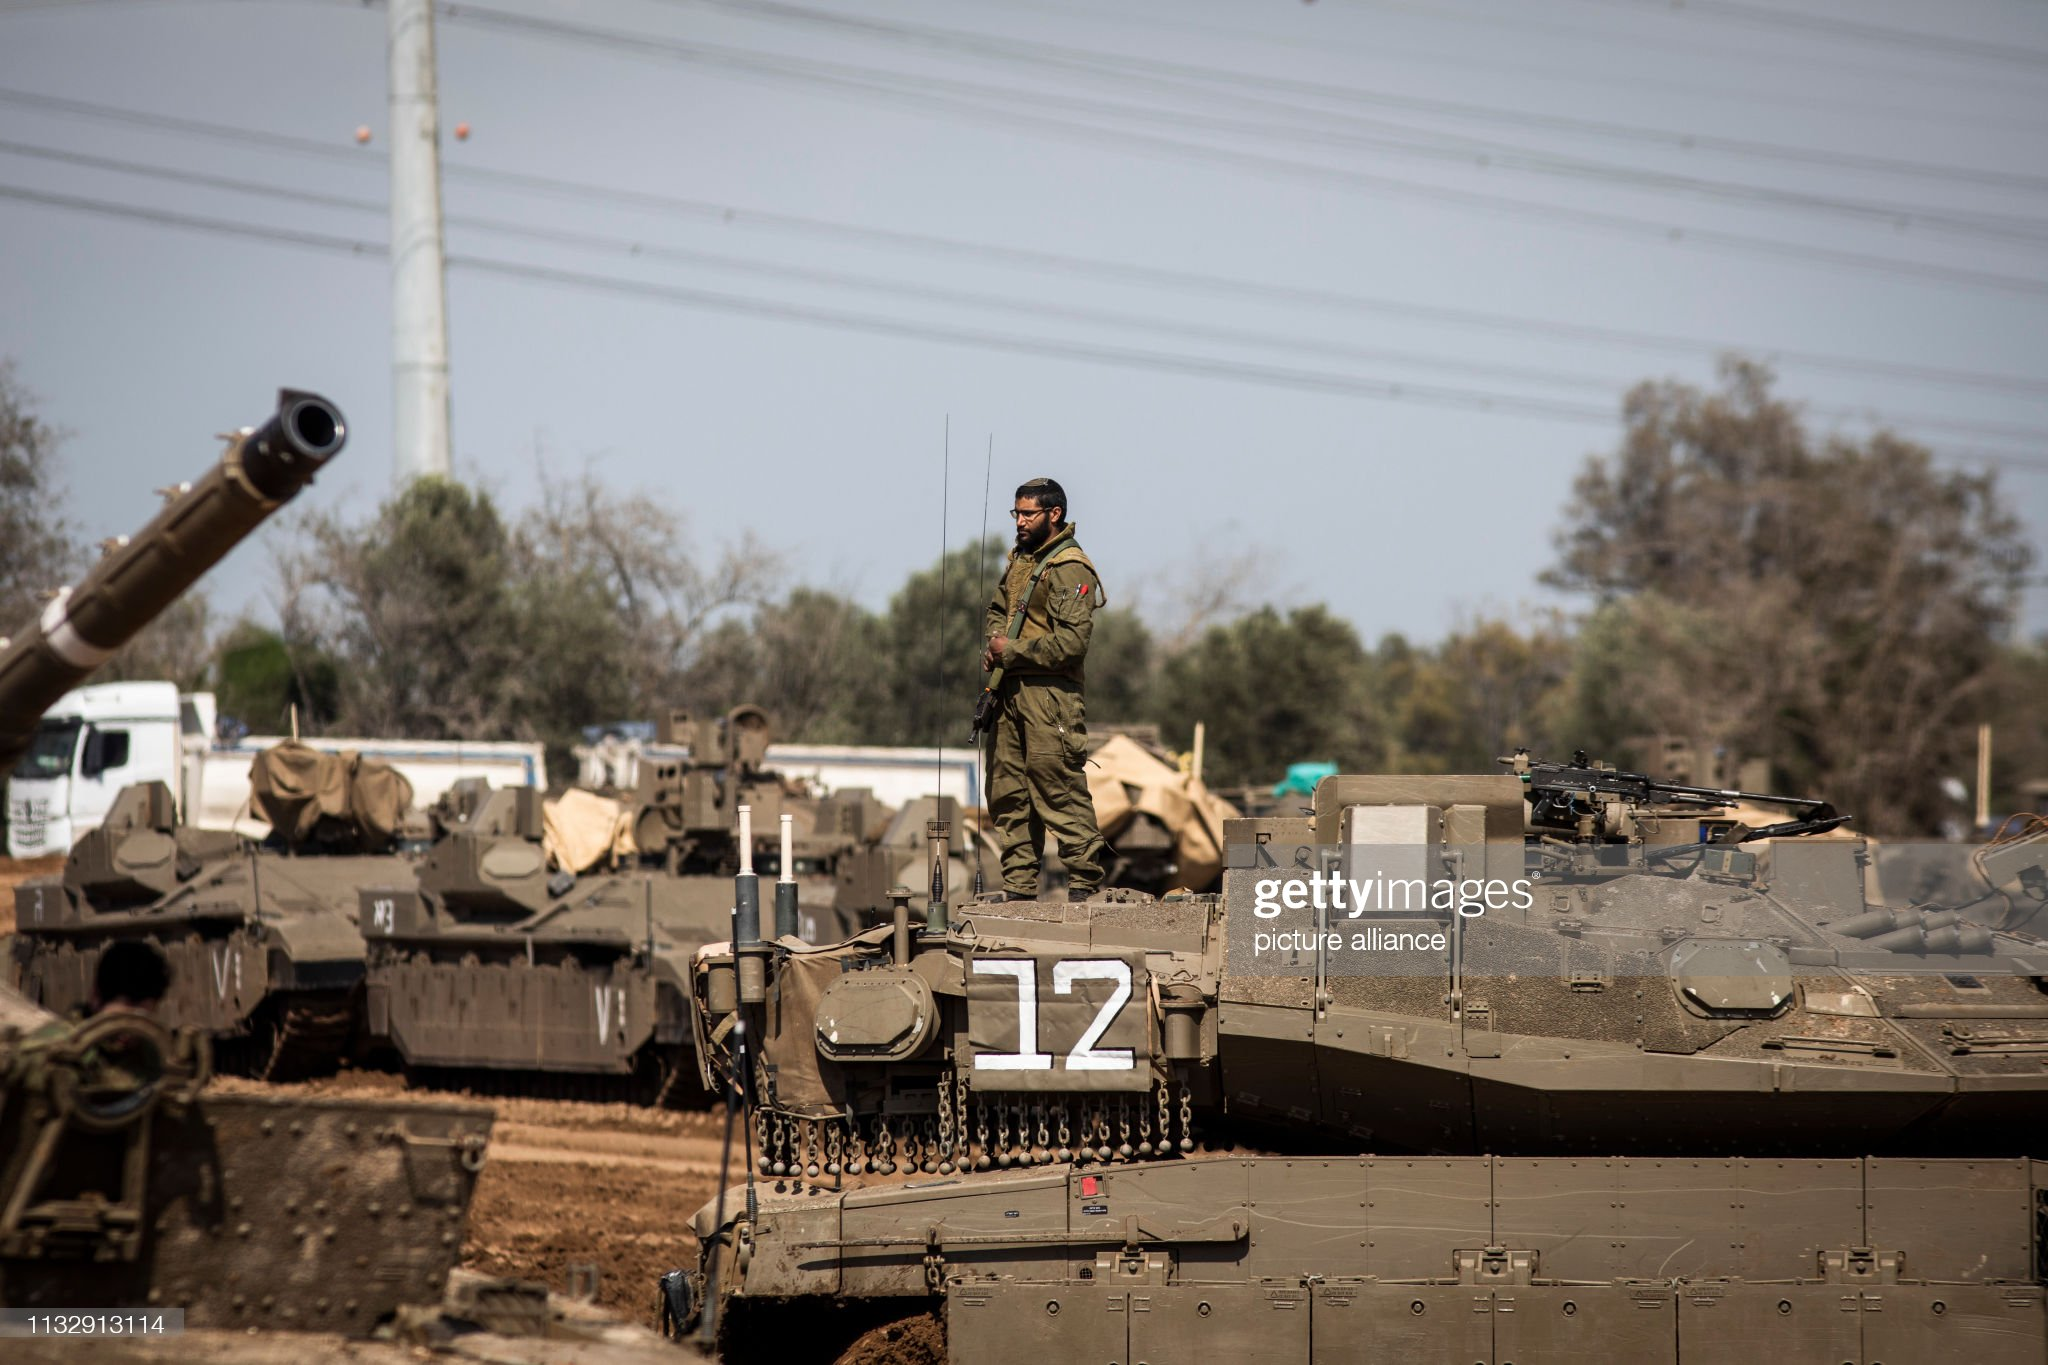 https://media.gettyimages.com/photos/march-2019-israel-ashkelon-israeli-tanks-and-armoured-personnel-seen-picture-id1132913114?s=2048x2048